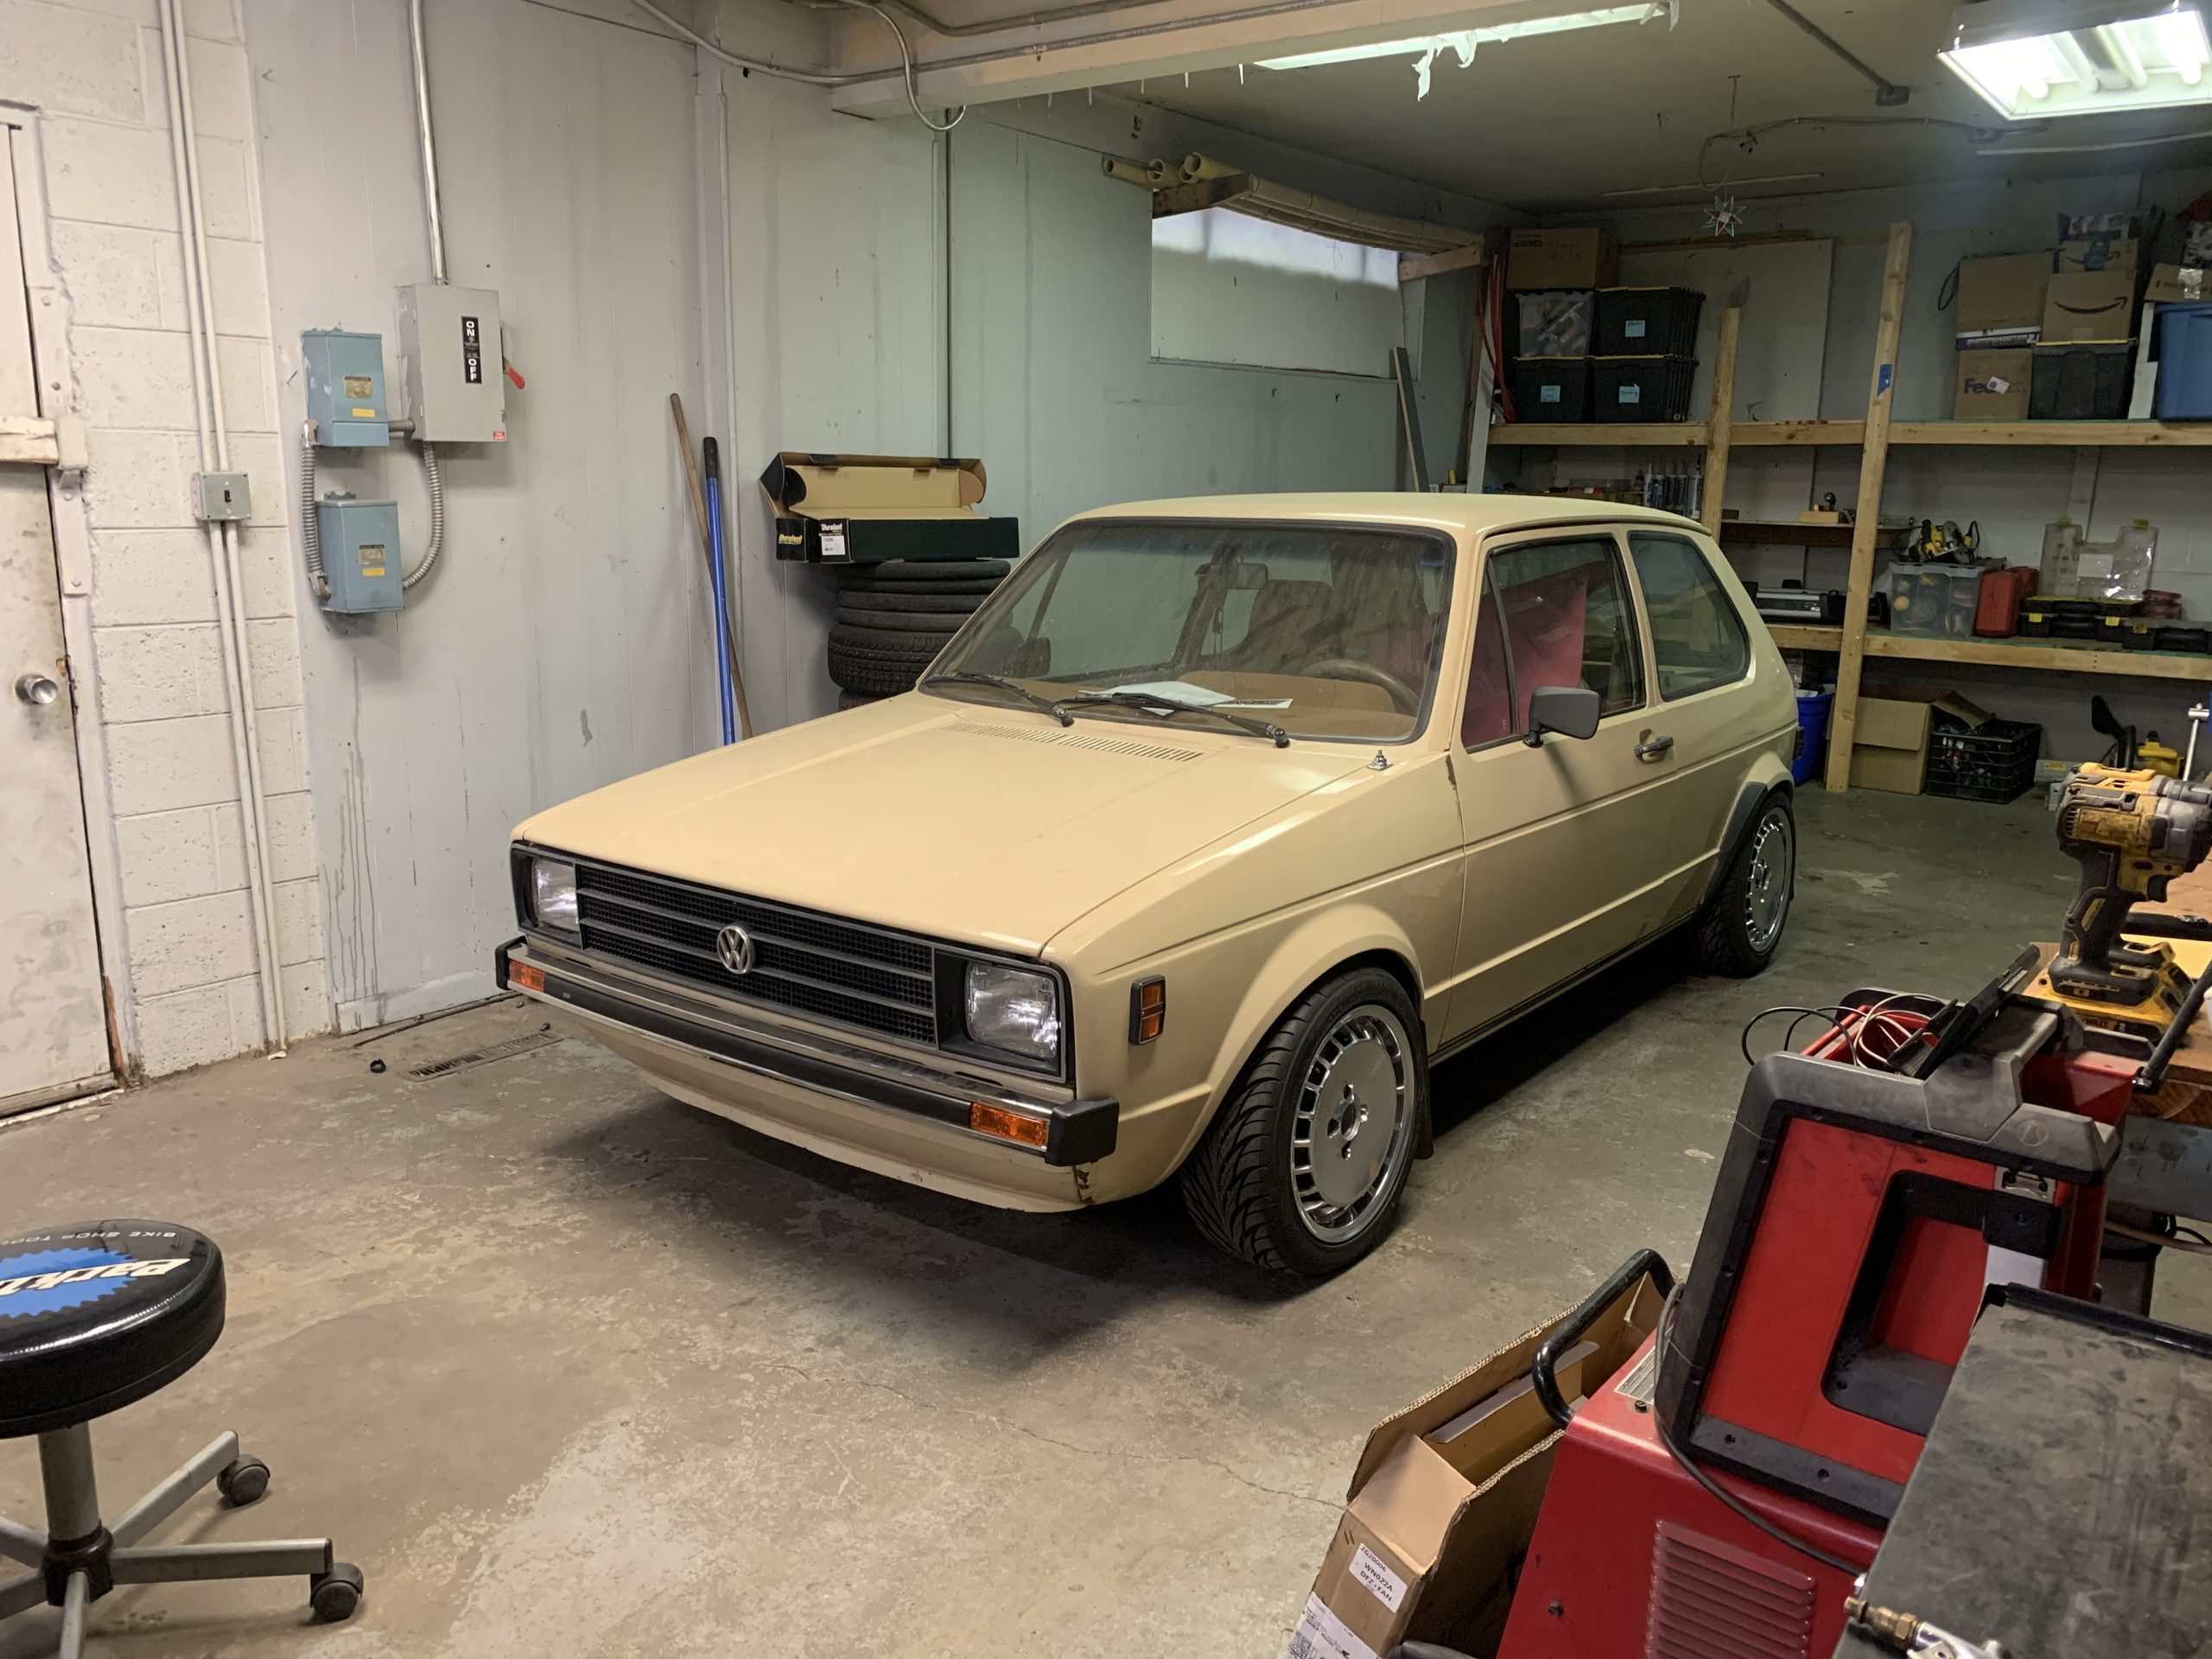 1980 VW Rabbit TDI swap shop Oct 04, 3 12 54 PM